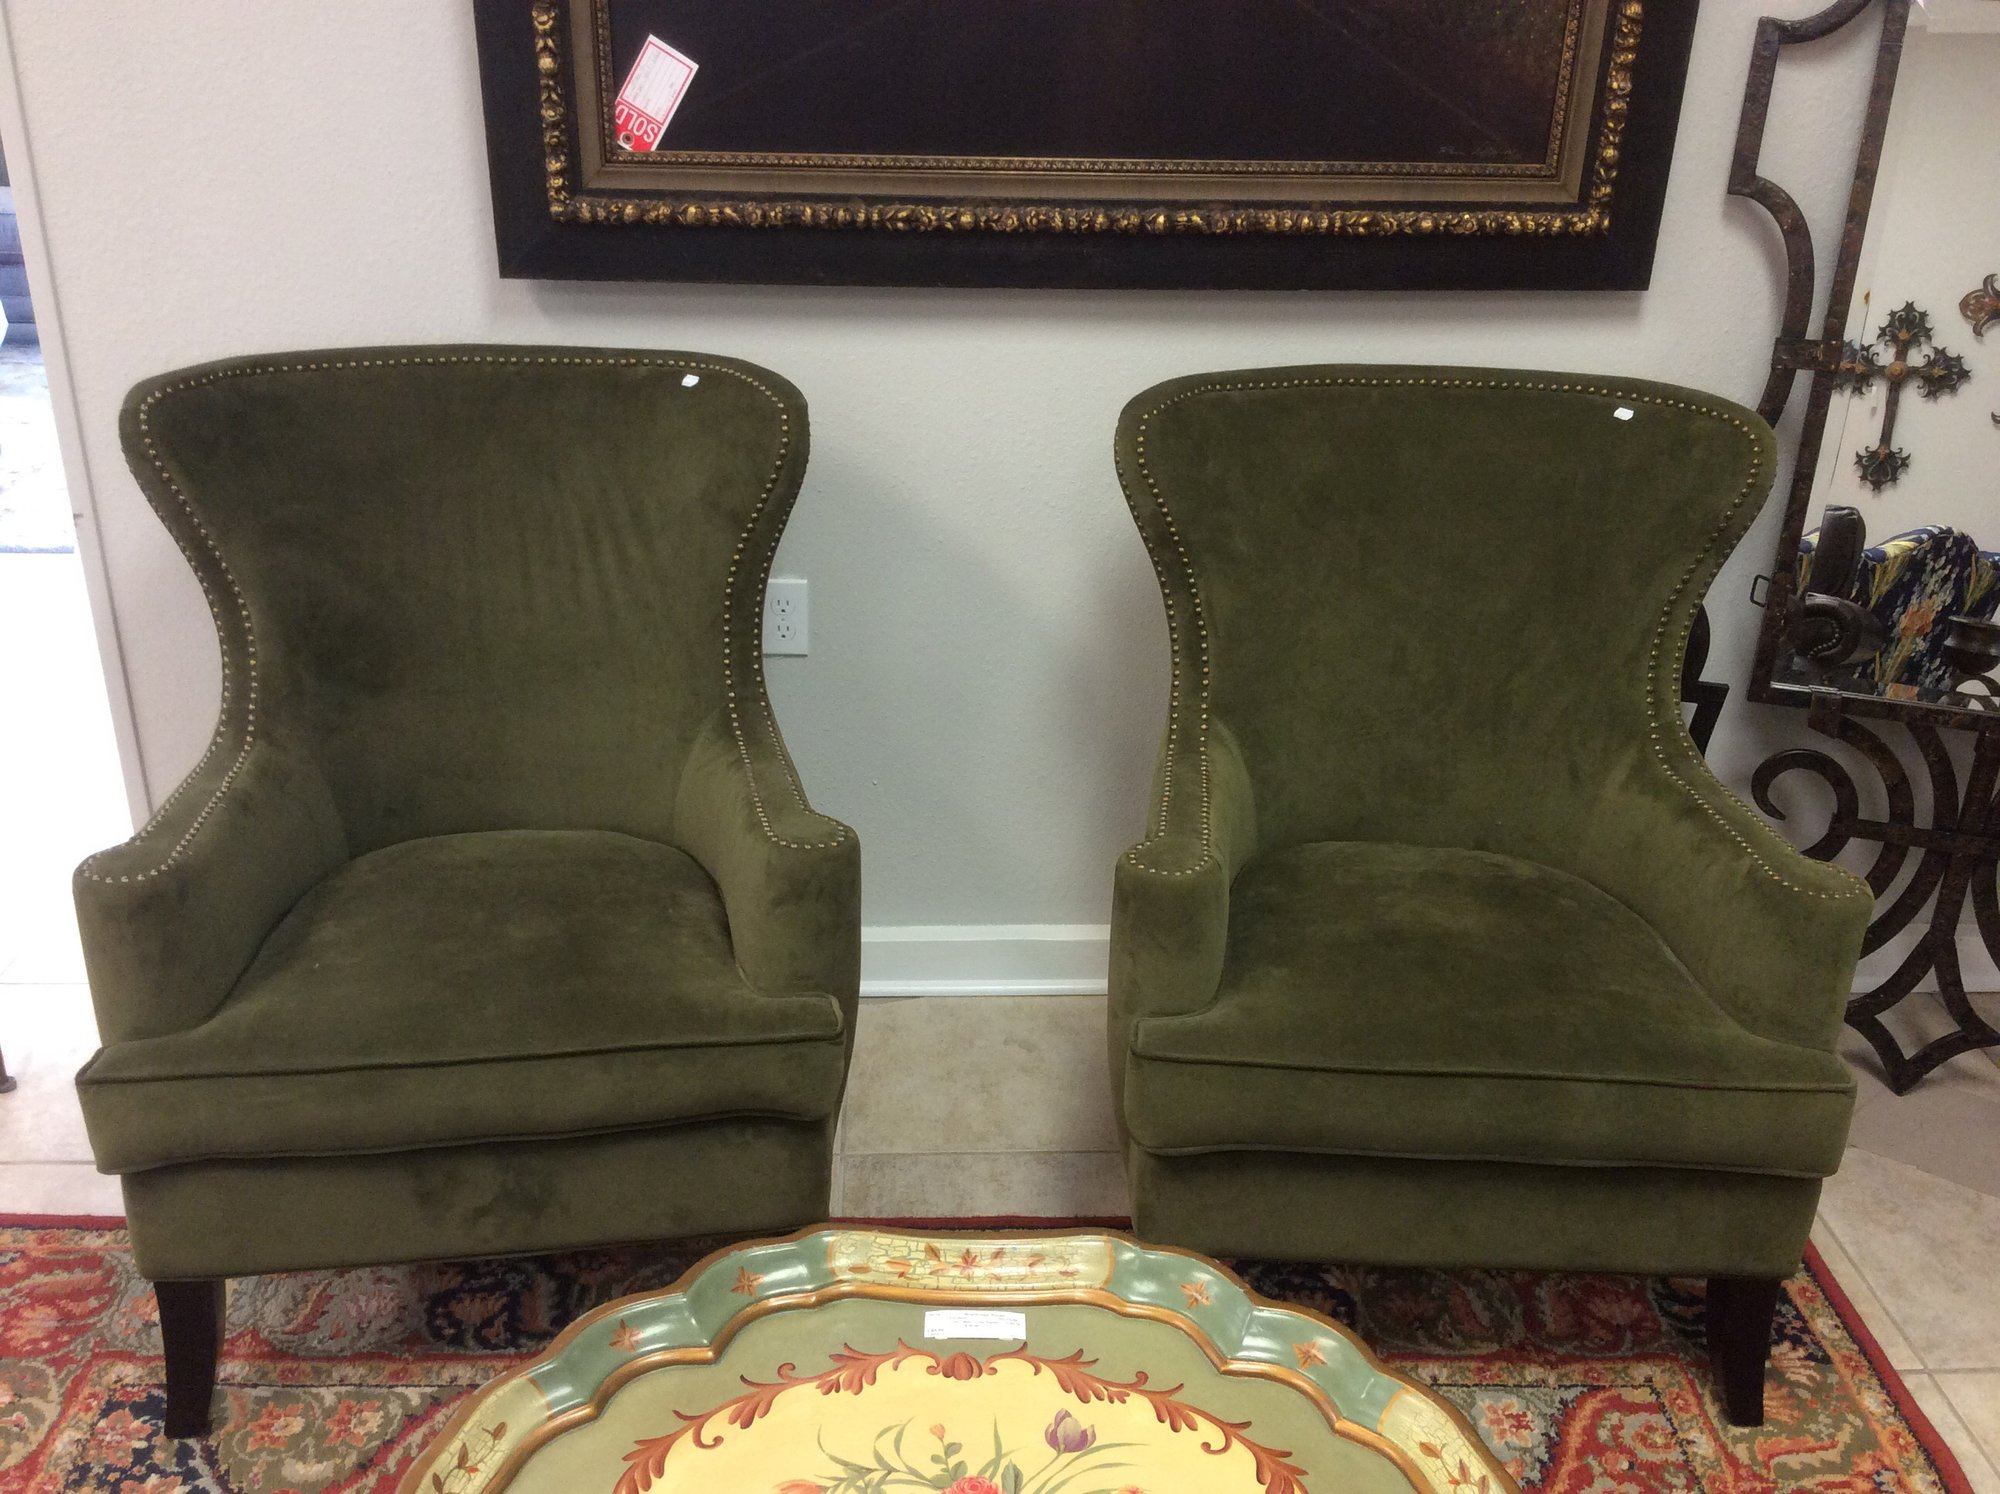 This duo features a quasi-wingback style. The cushions are not removable and there are brass nailhead accents along the arms and up around the back.